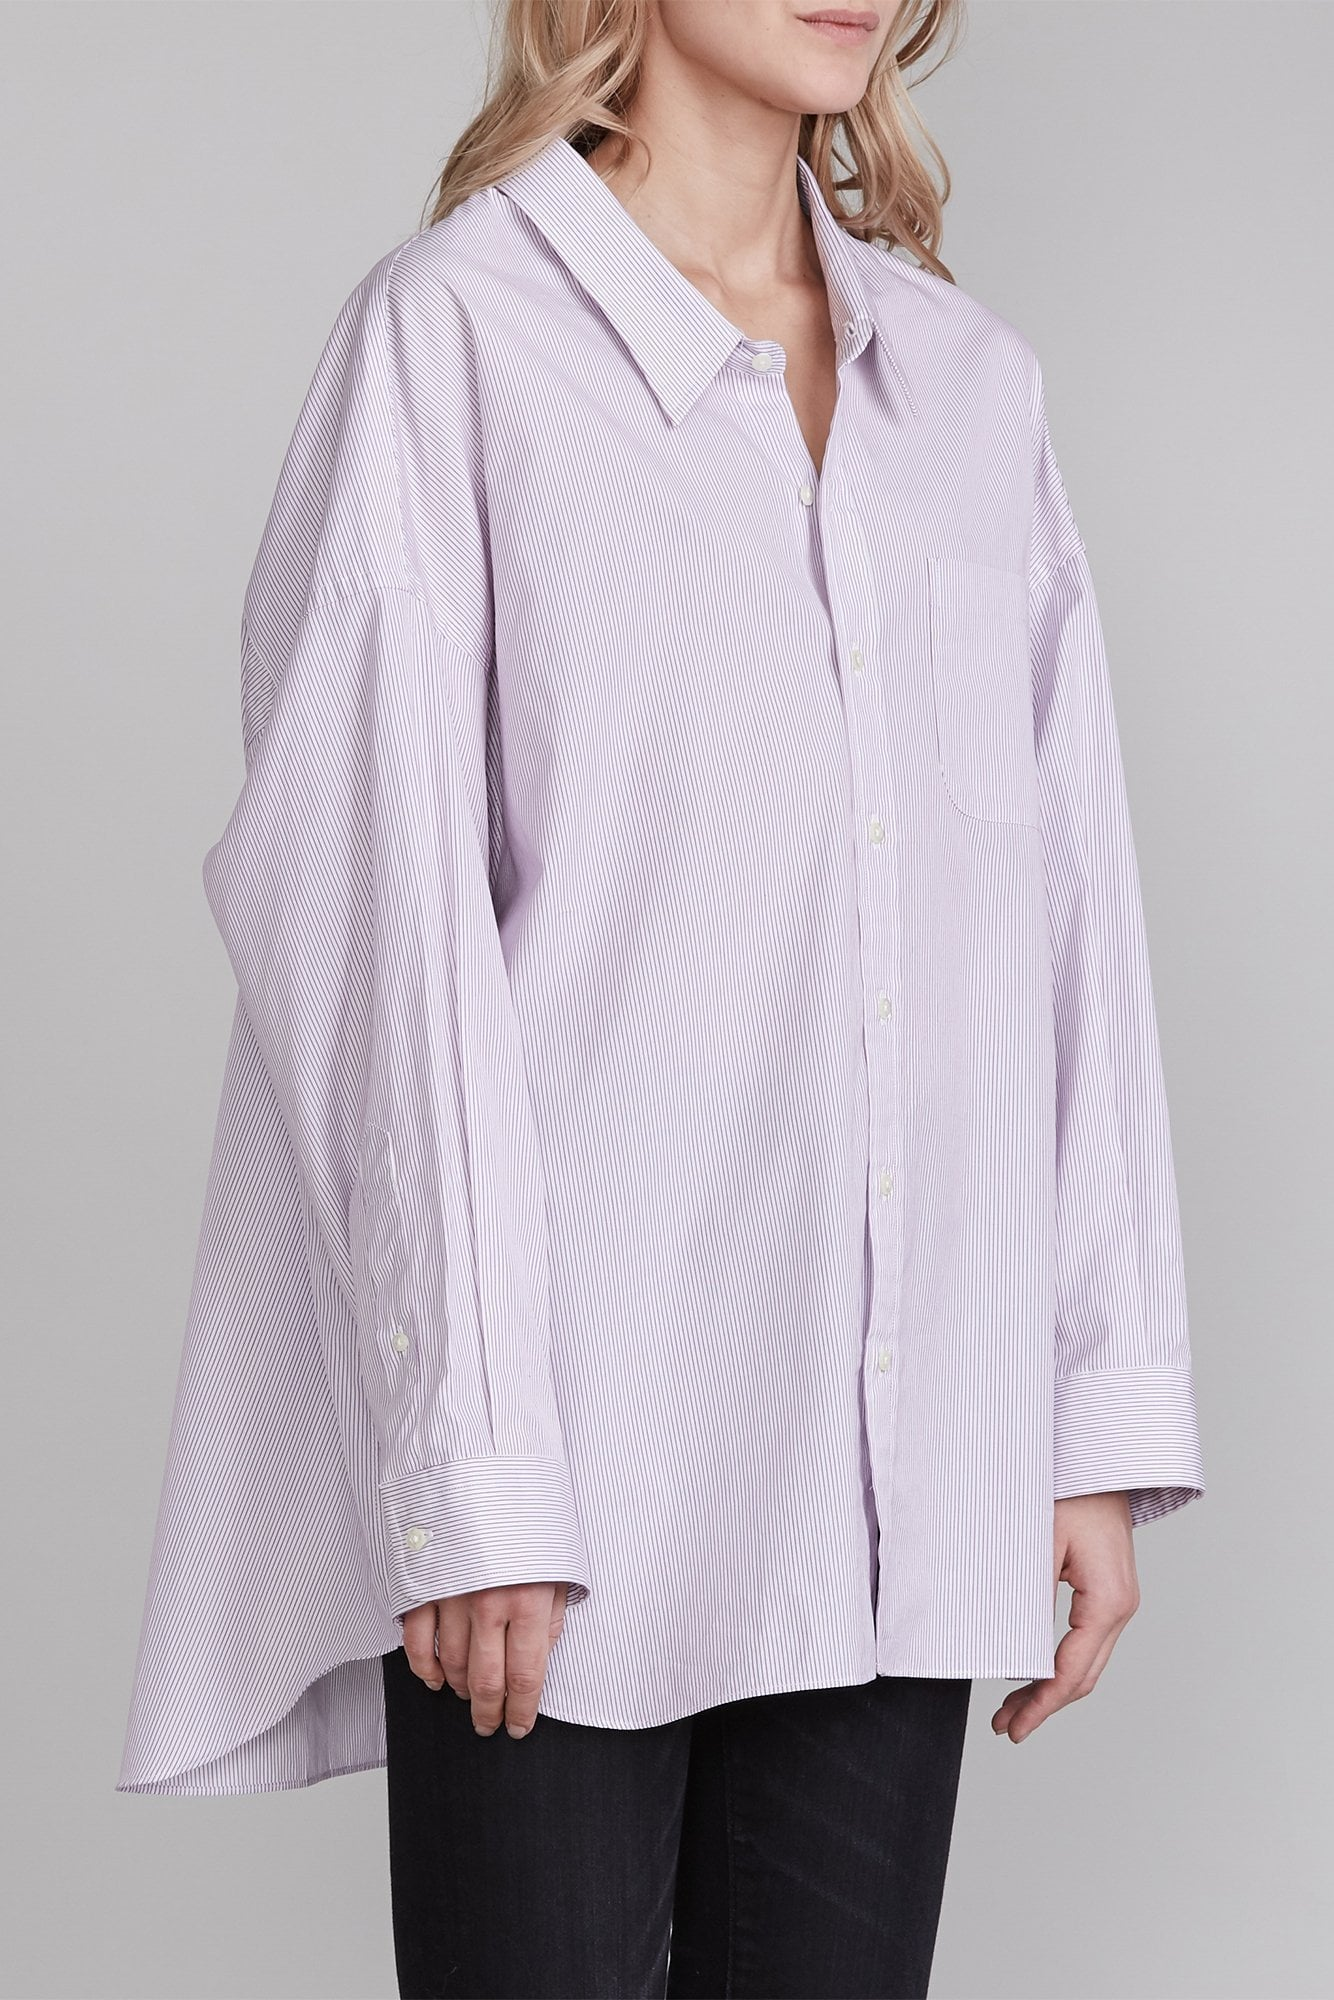 Drop Neck Button Up Shirt - Purple Pinstripe